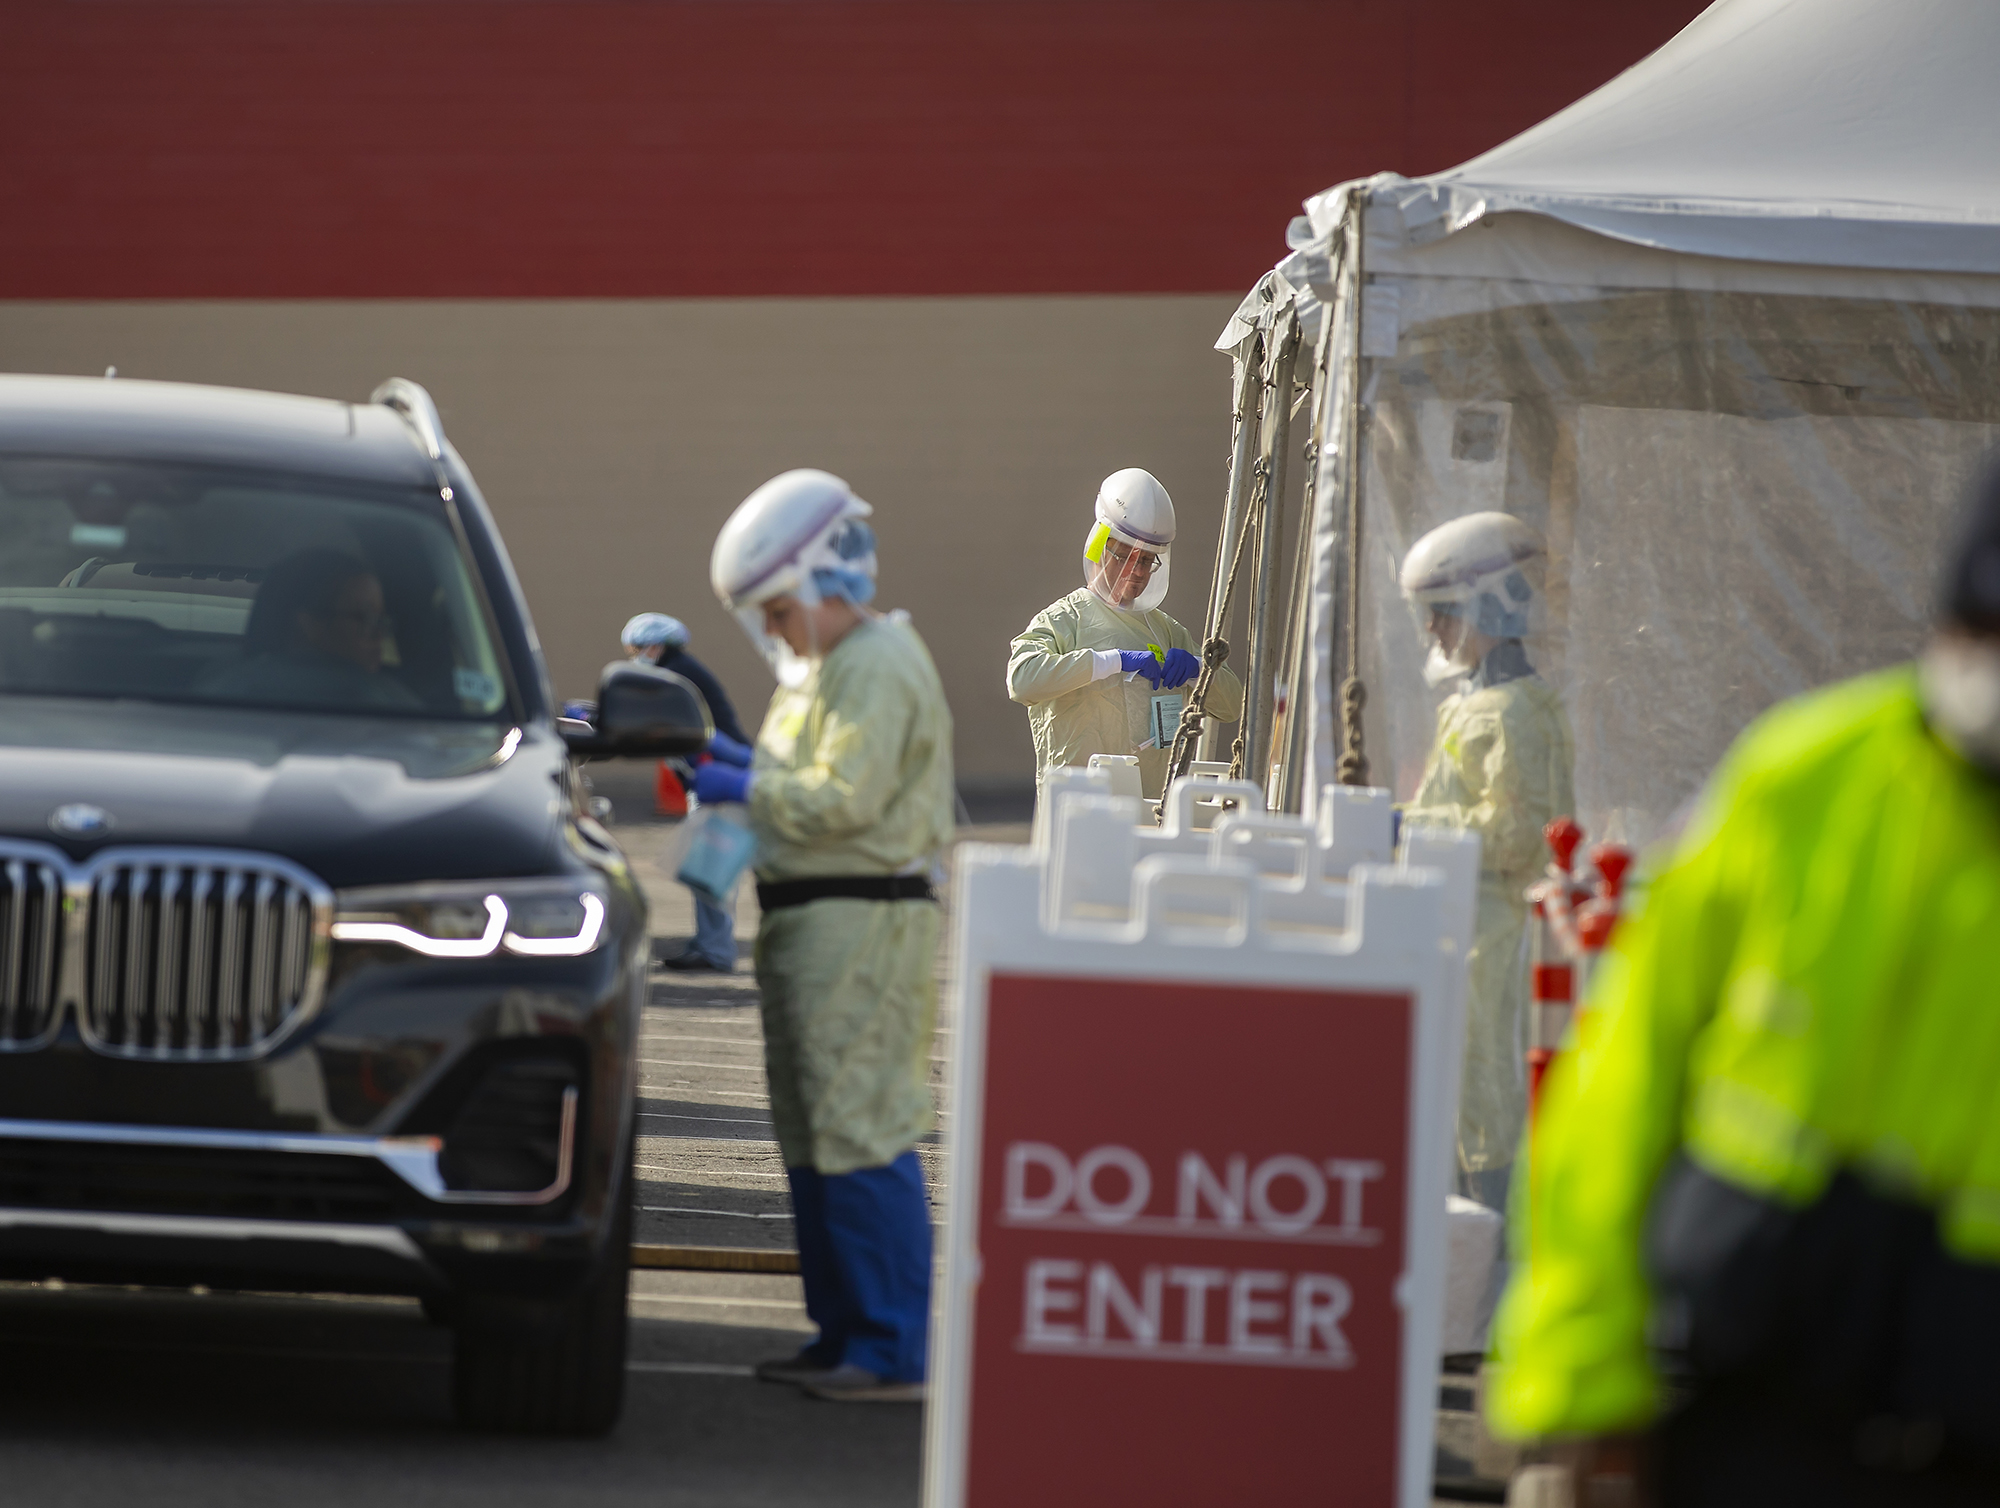 Three medical personnel outside in protective gear working at a drive-through COVID-19 testing site, a Don Not Enter sign in front of the vehicle